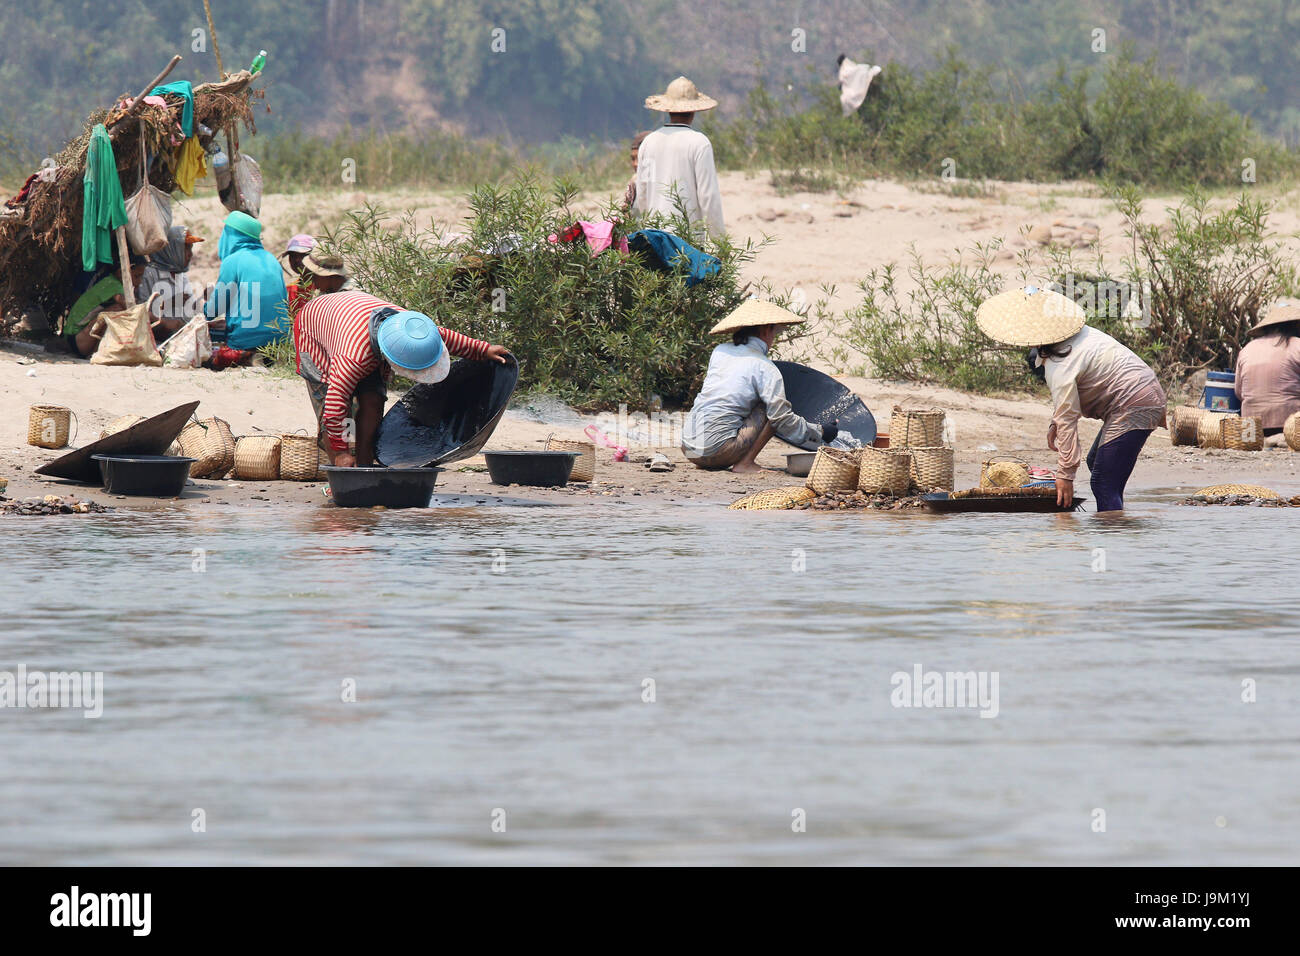 Panning for gold on the Mekong in Laos - Stock Image